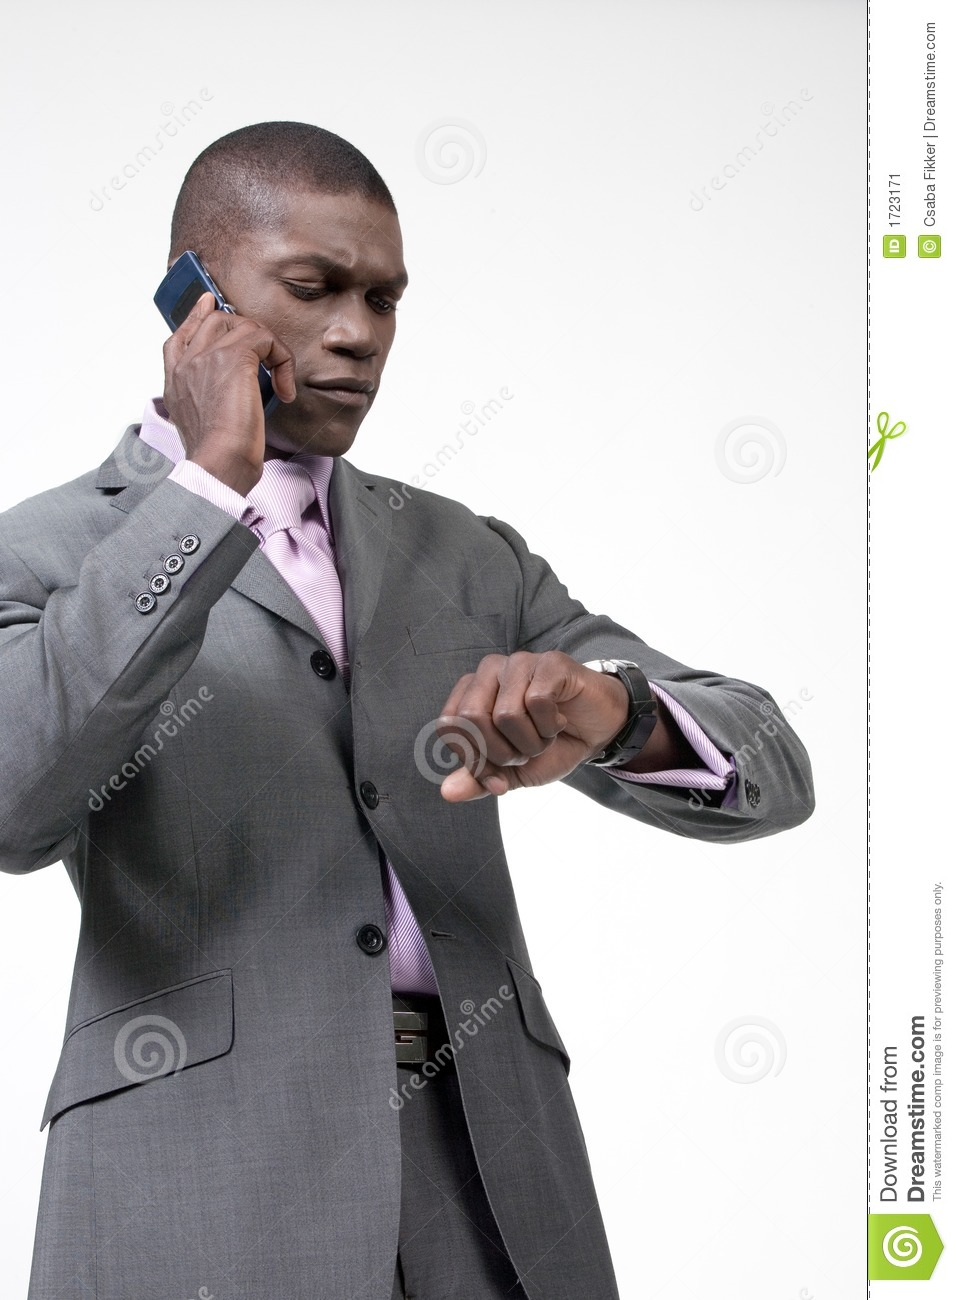 More similar stock images of ` Busy businessman on phone `